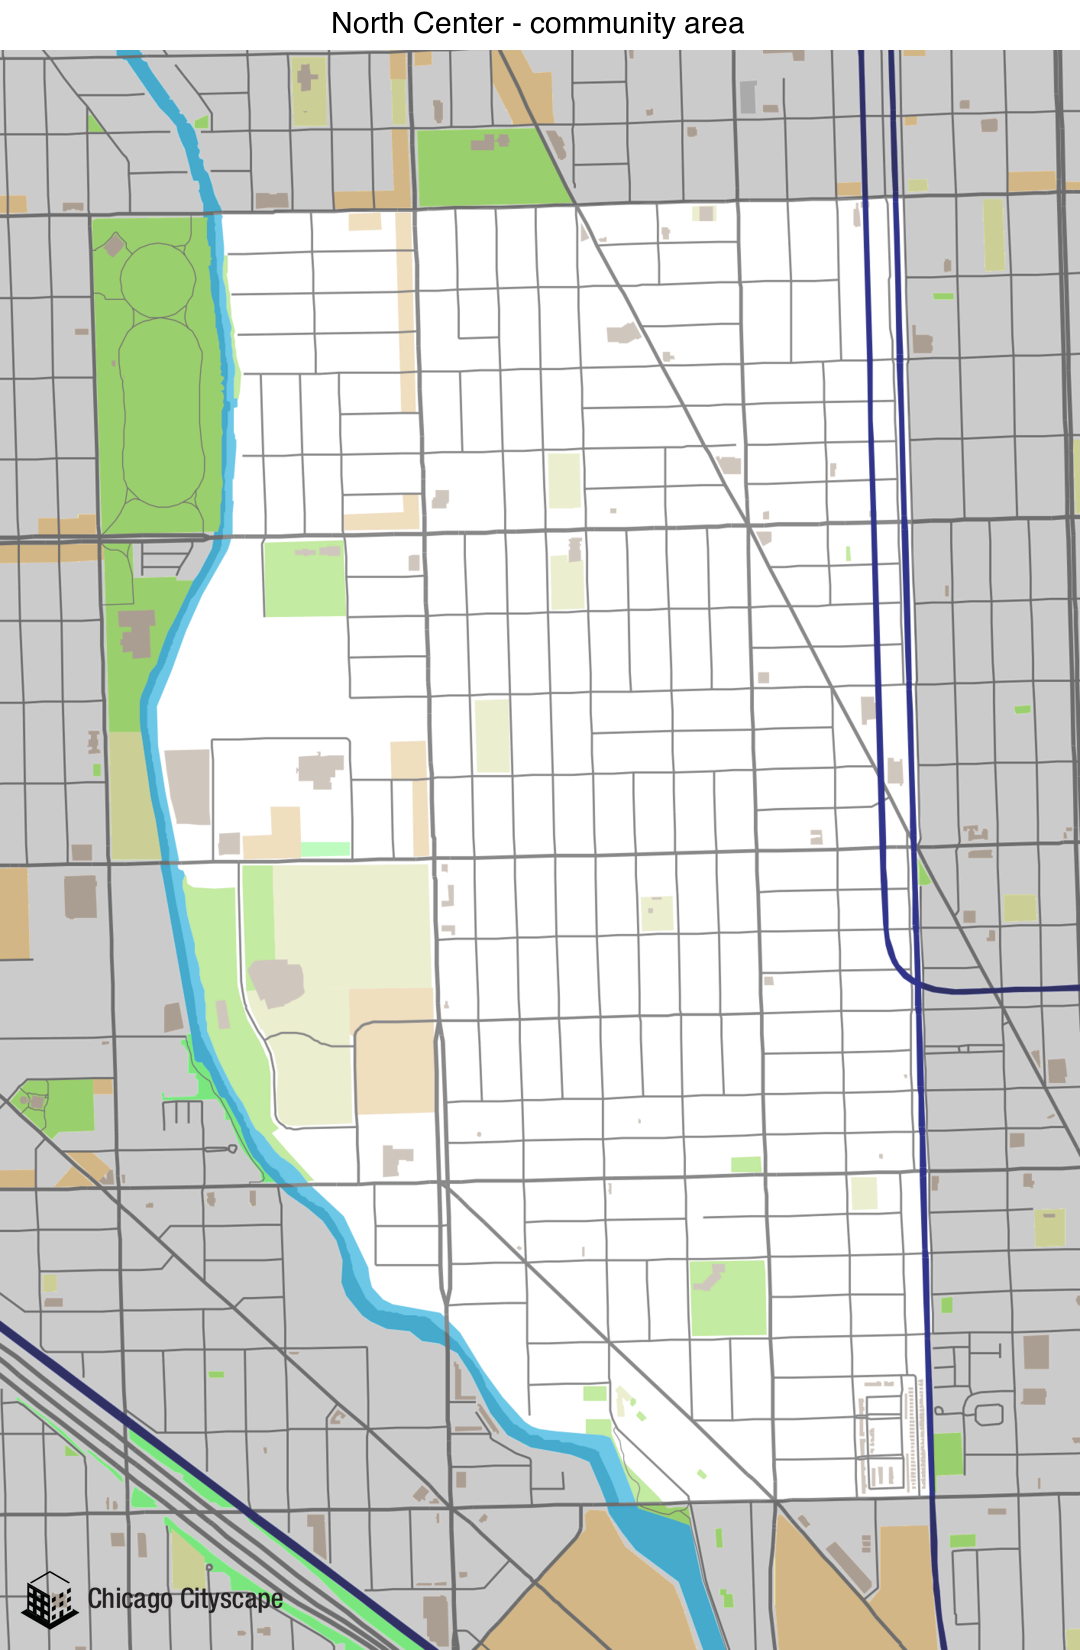 Map of NORTH CENTER Community Area designed by Chicago Cityscape